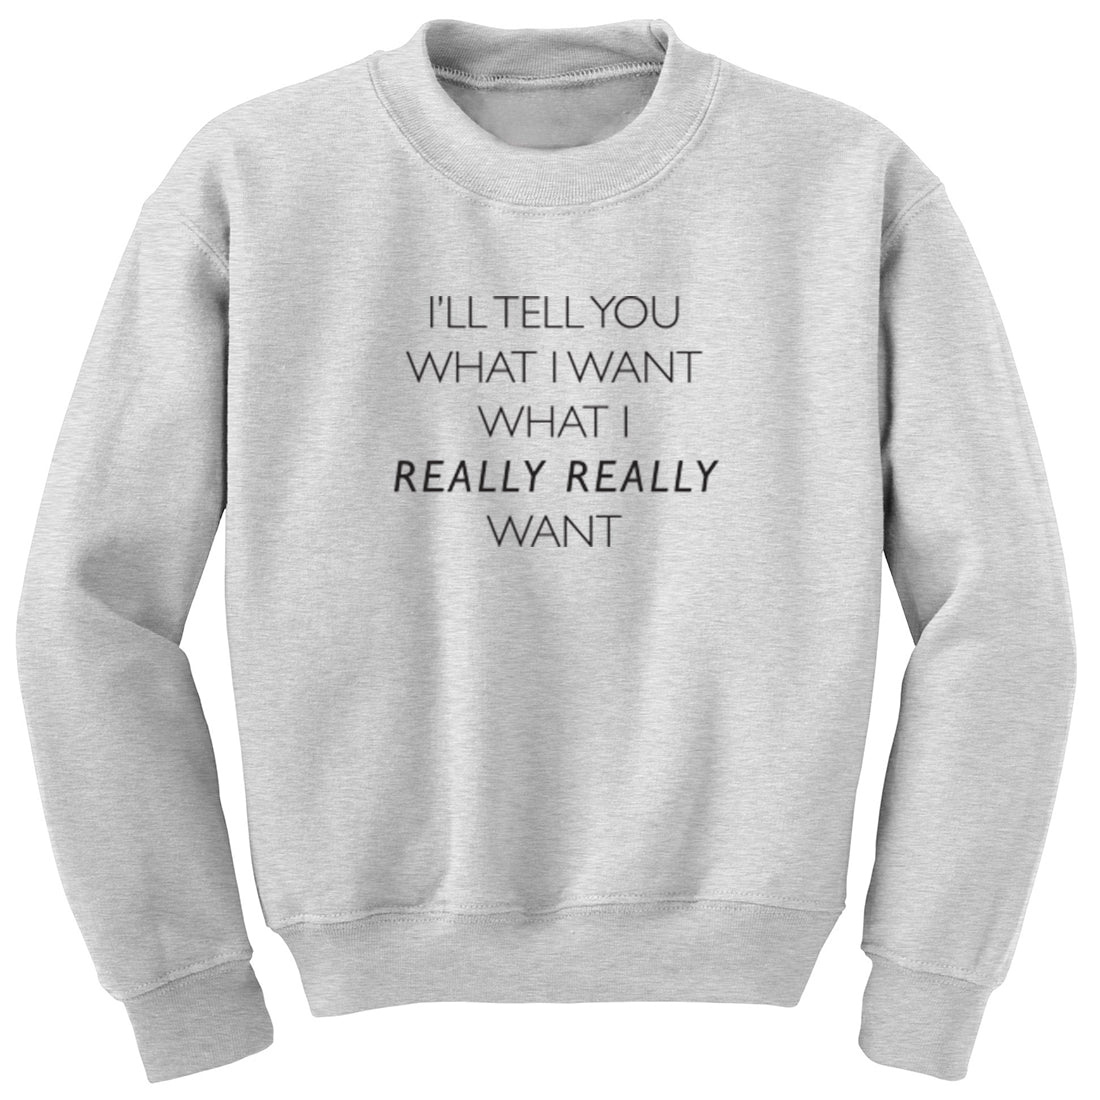 I'll Tell You What I Want What I Really Really Want- Spice Girls Childrens Ages 3/4-12/14 Unisex Jumper K2432